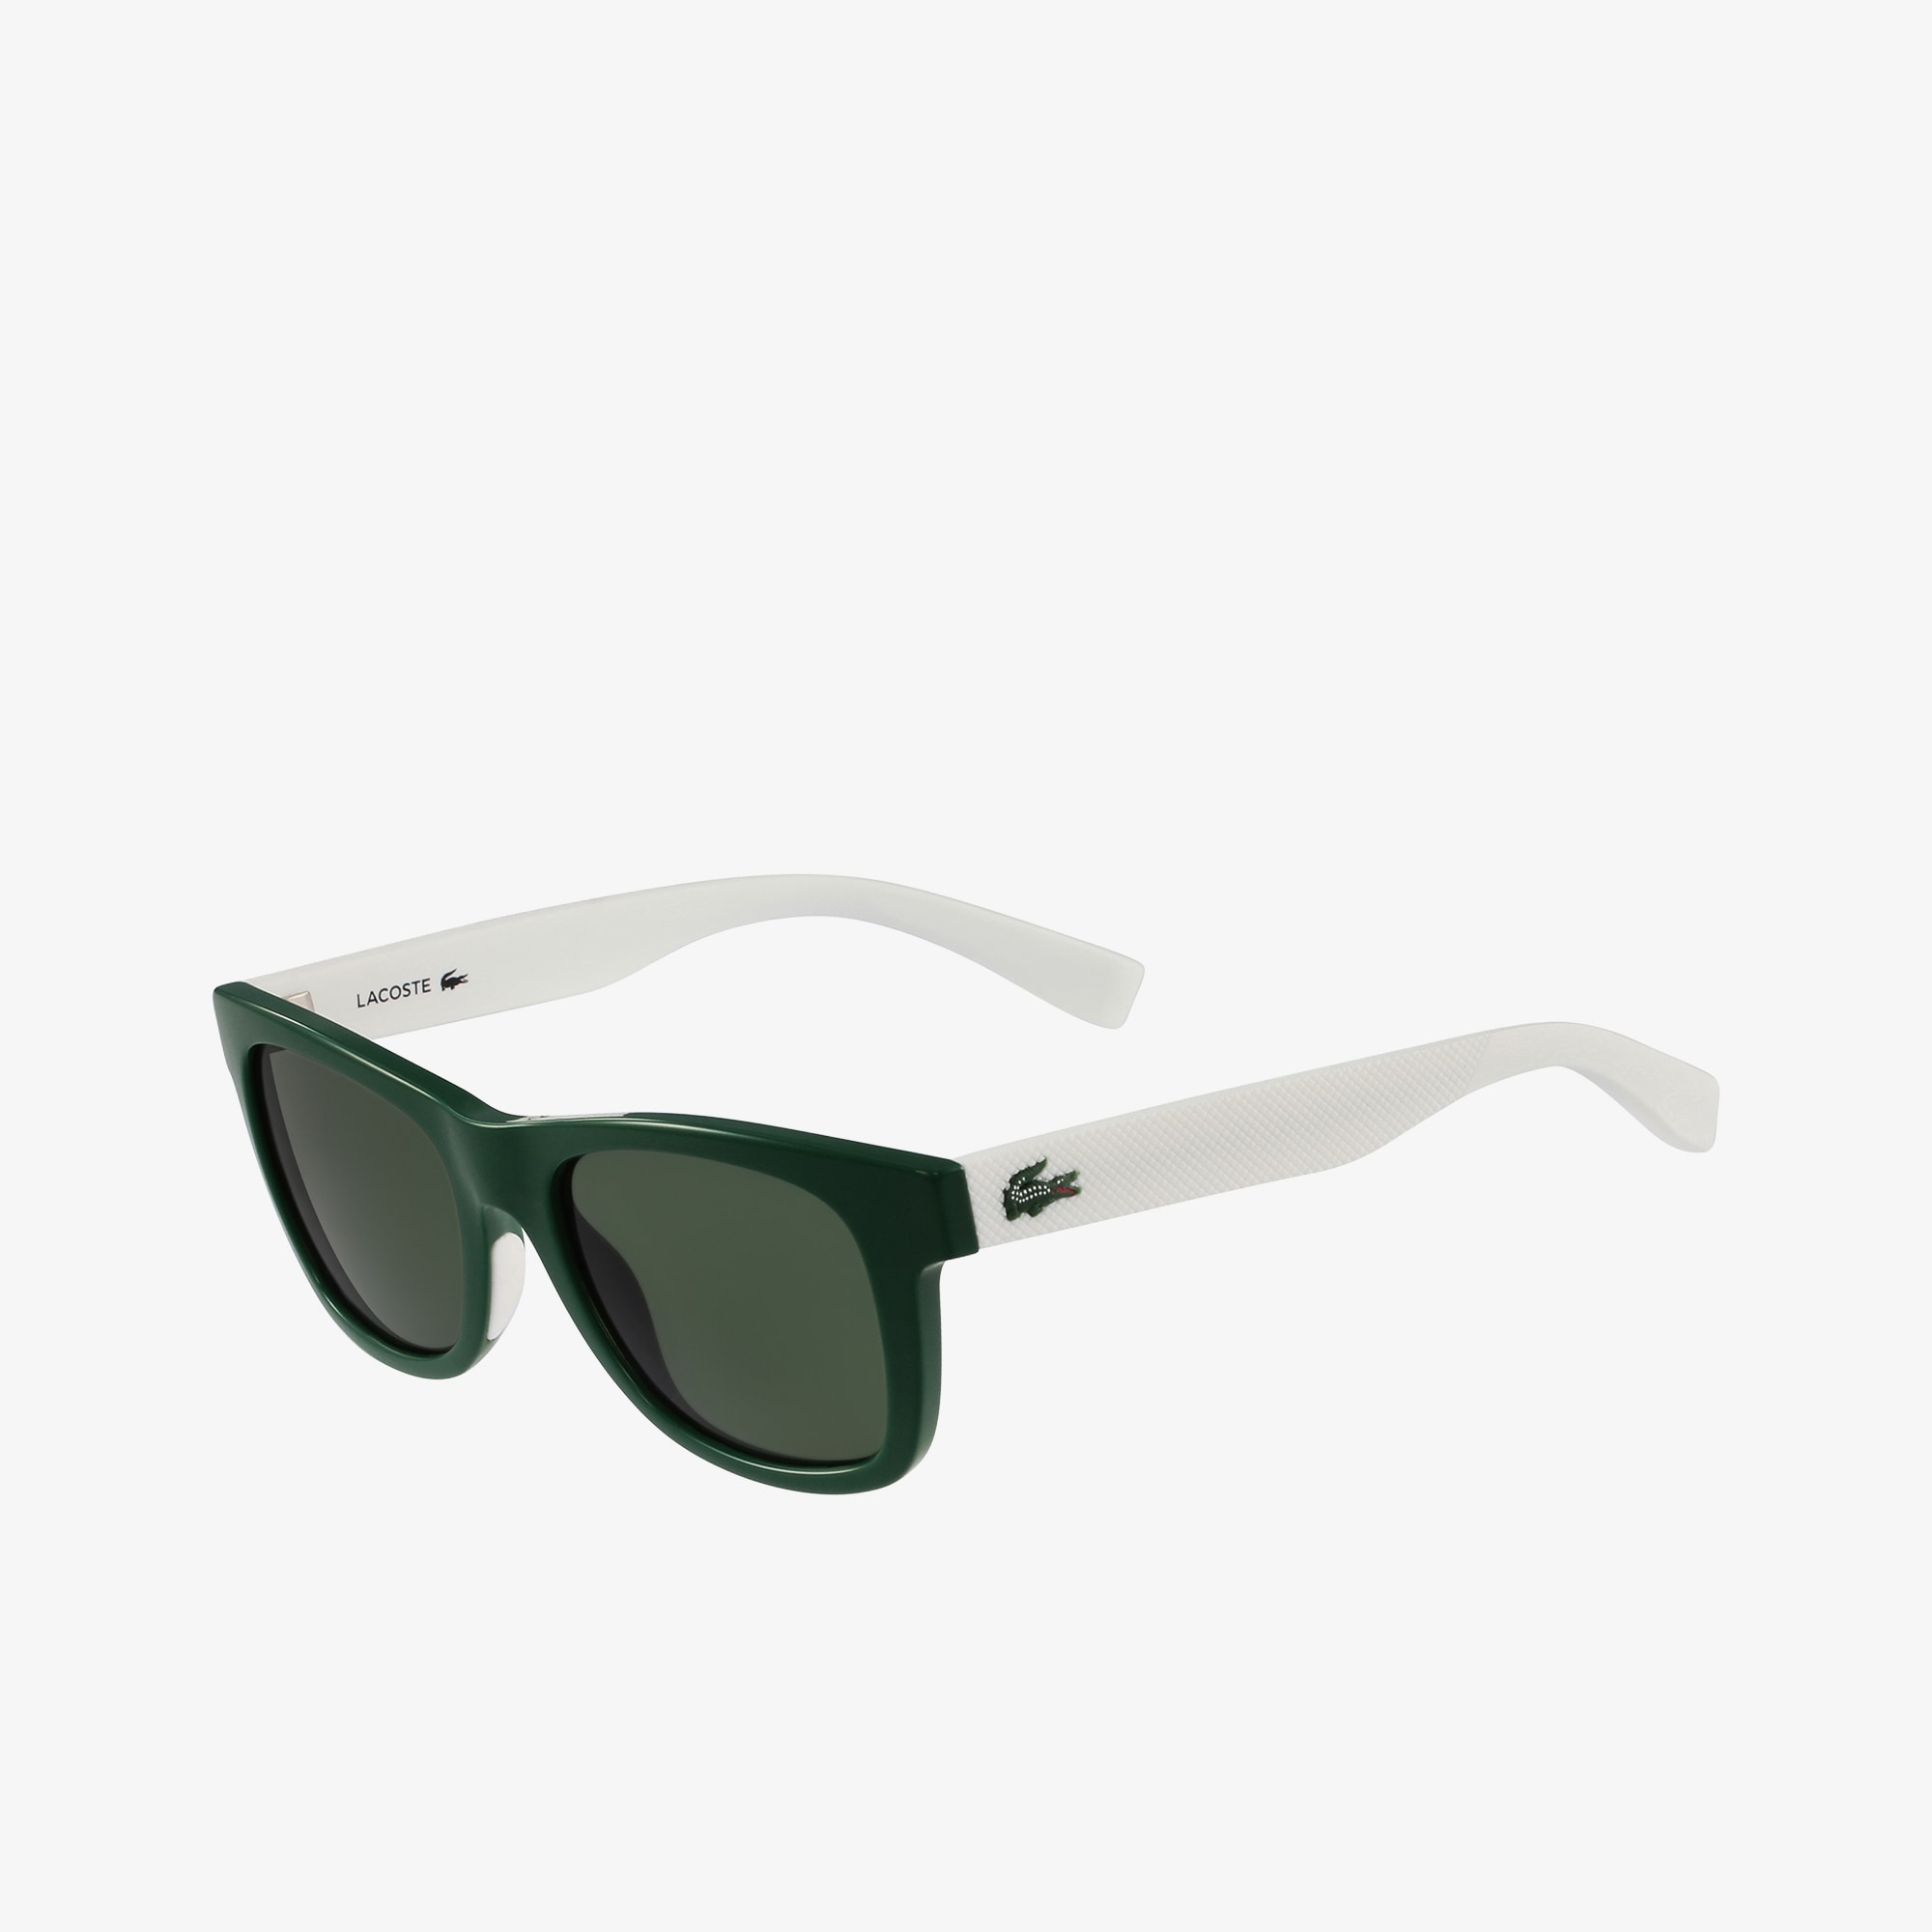 Modified Rectangle Plastic L.12.12 T(w)eens Sunglasses